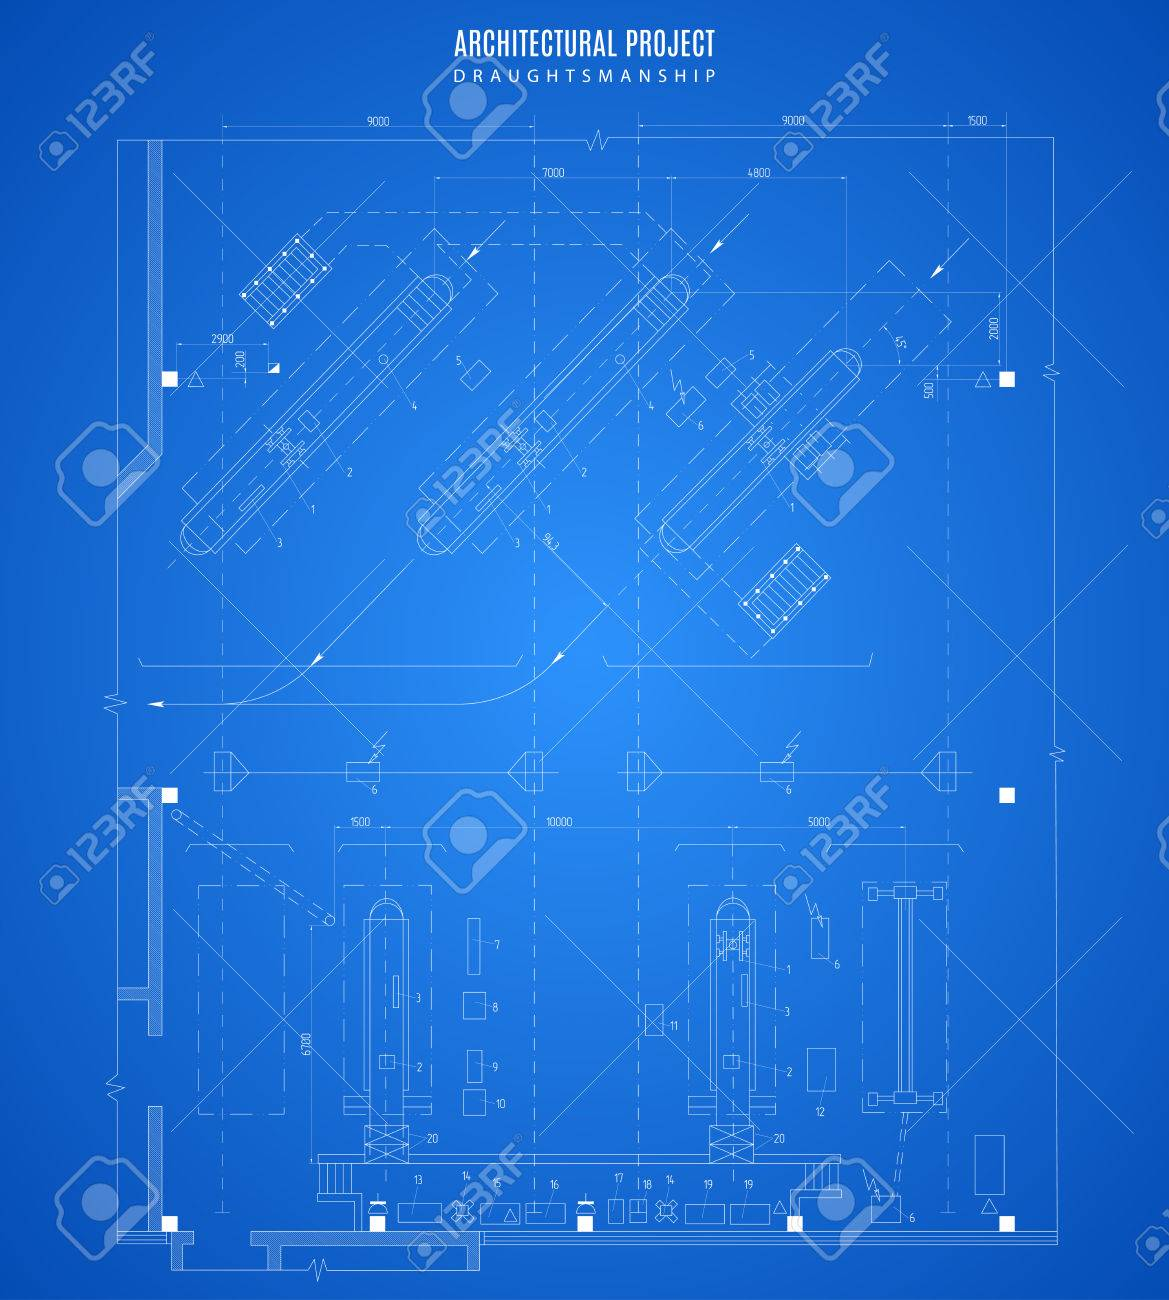 Architectural blueprint technical drawing construction plan architectural blueprint technical drawing construction plan or project on the blue background stock malvernweather Image collections